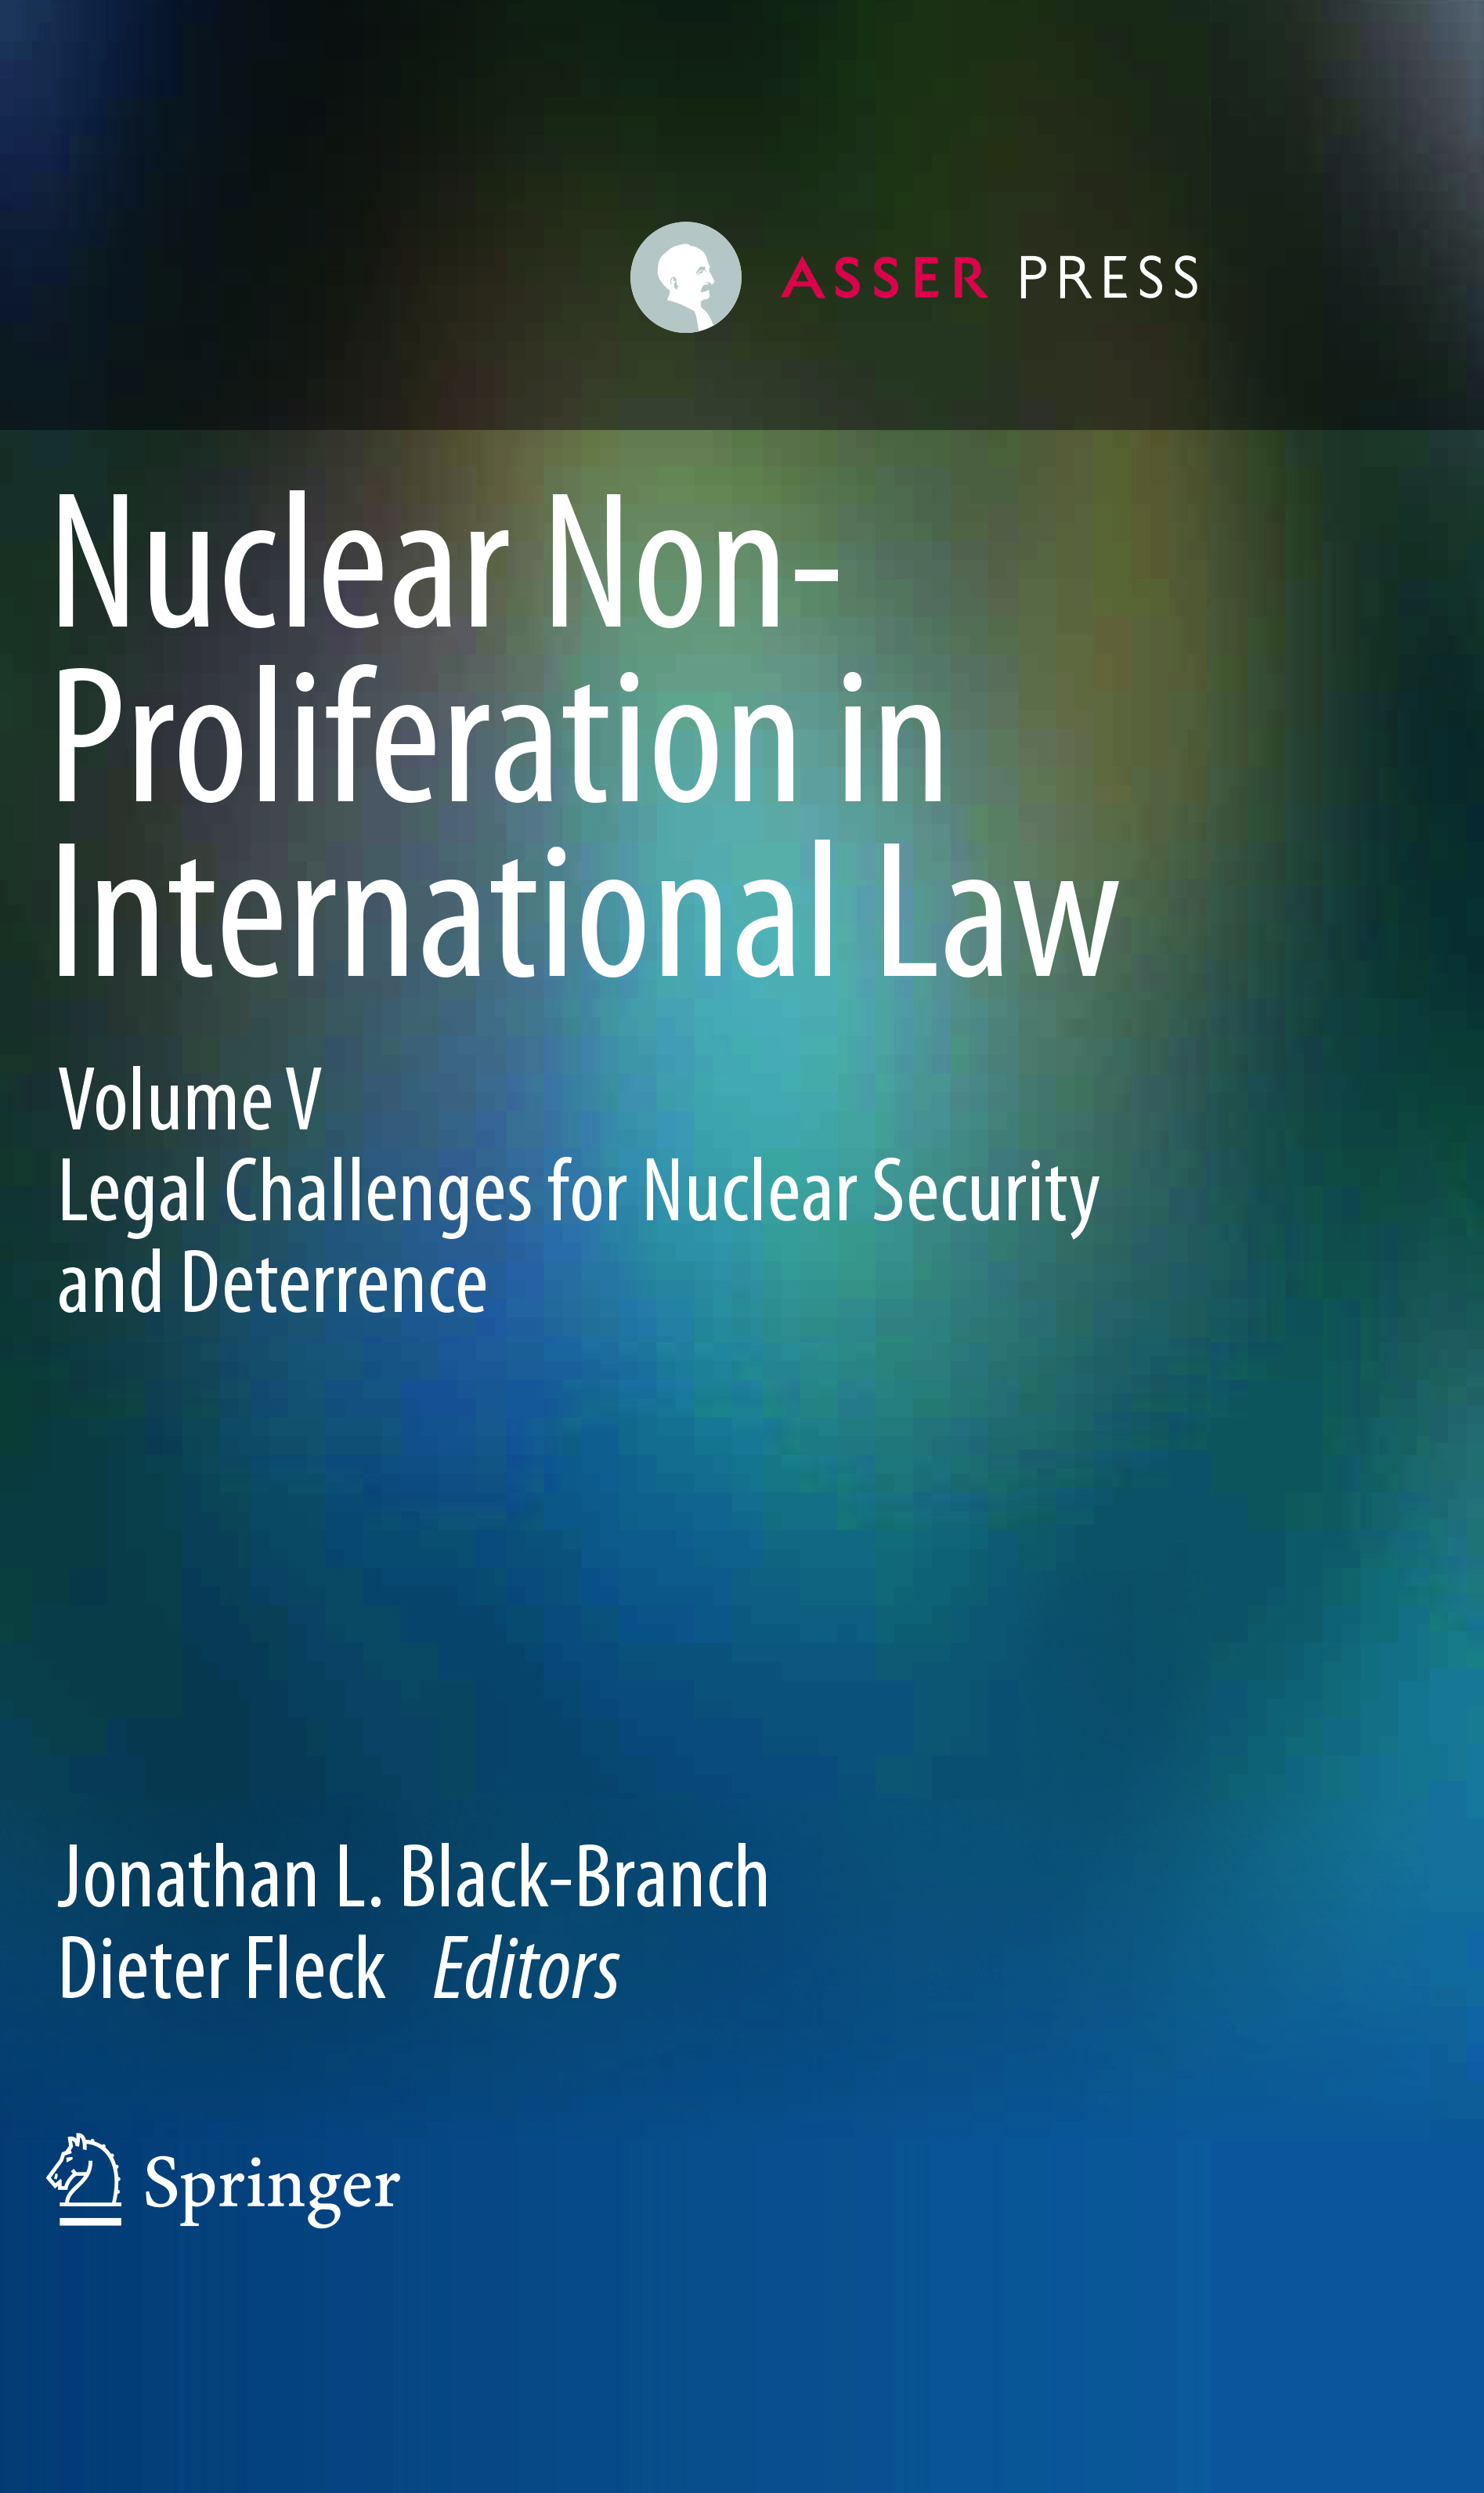 Nuclear Non-Proliferation in International Law - Volume V - Legal Challenges for Nuclear Security and Deterrence